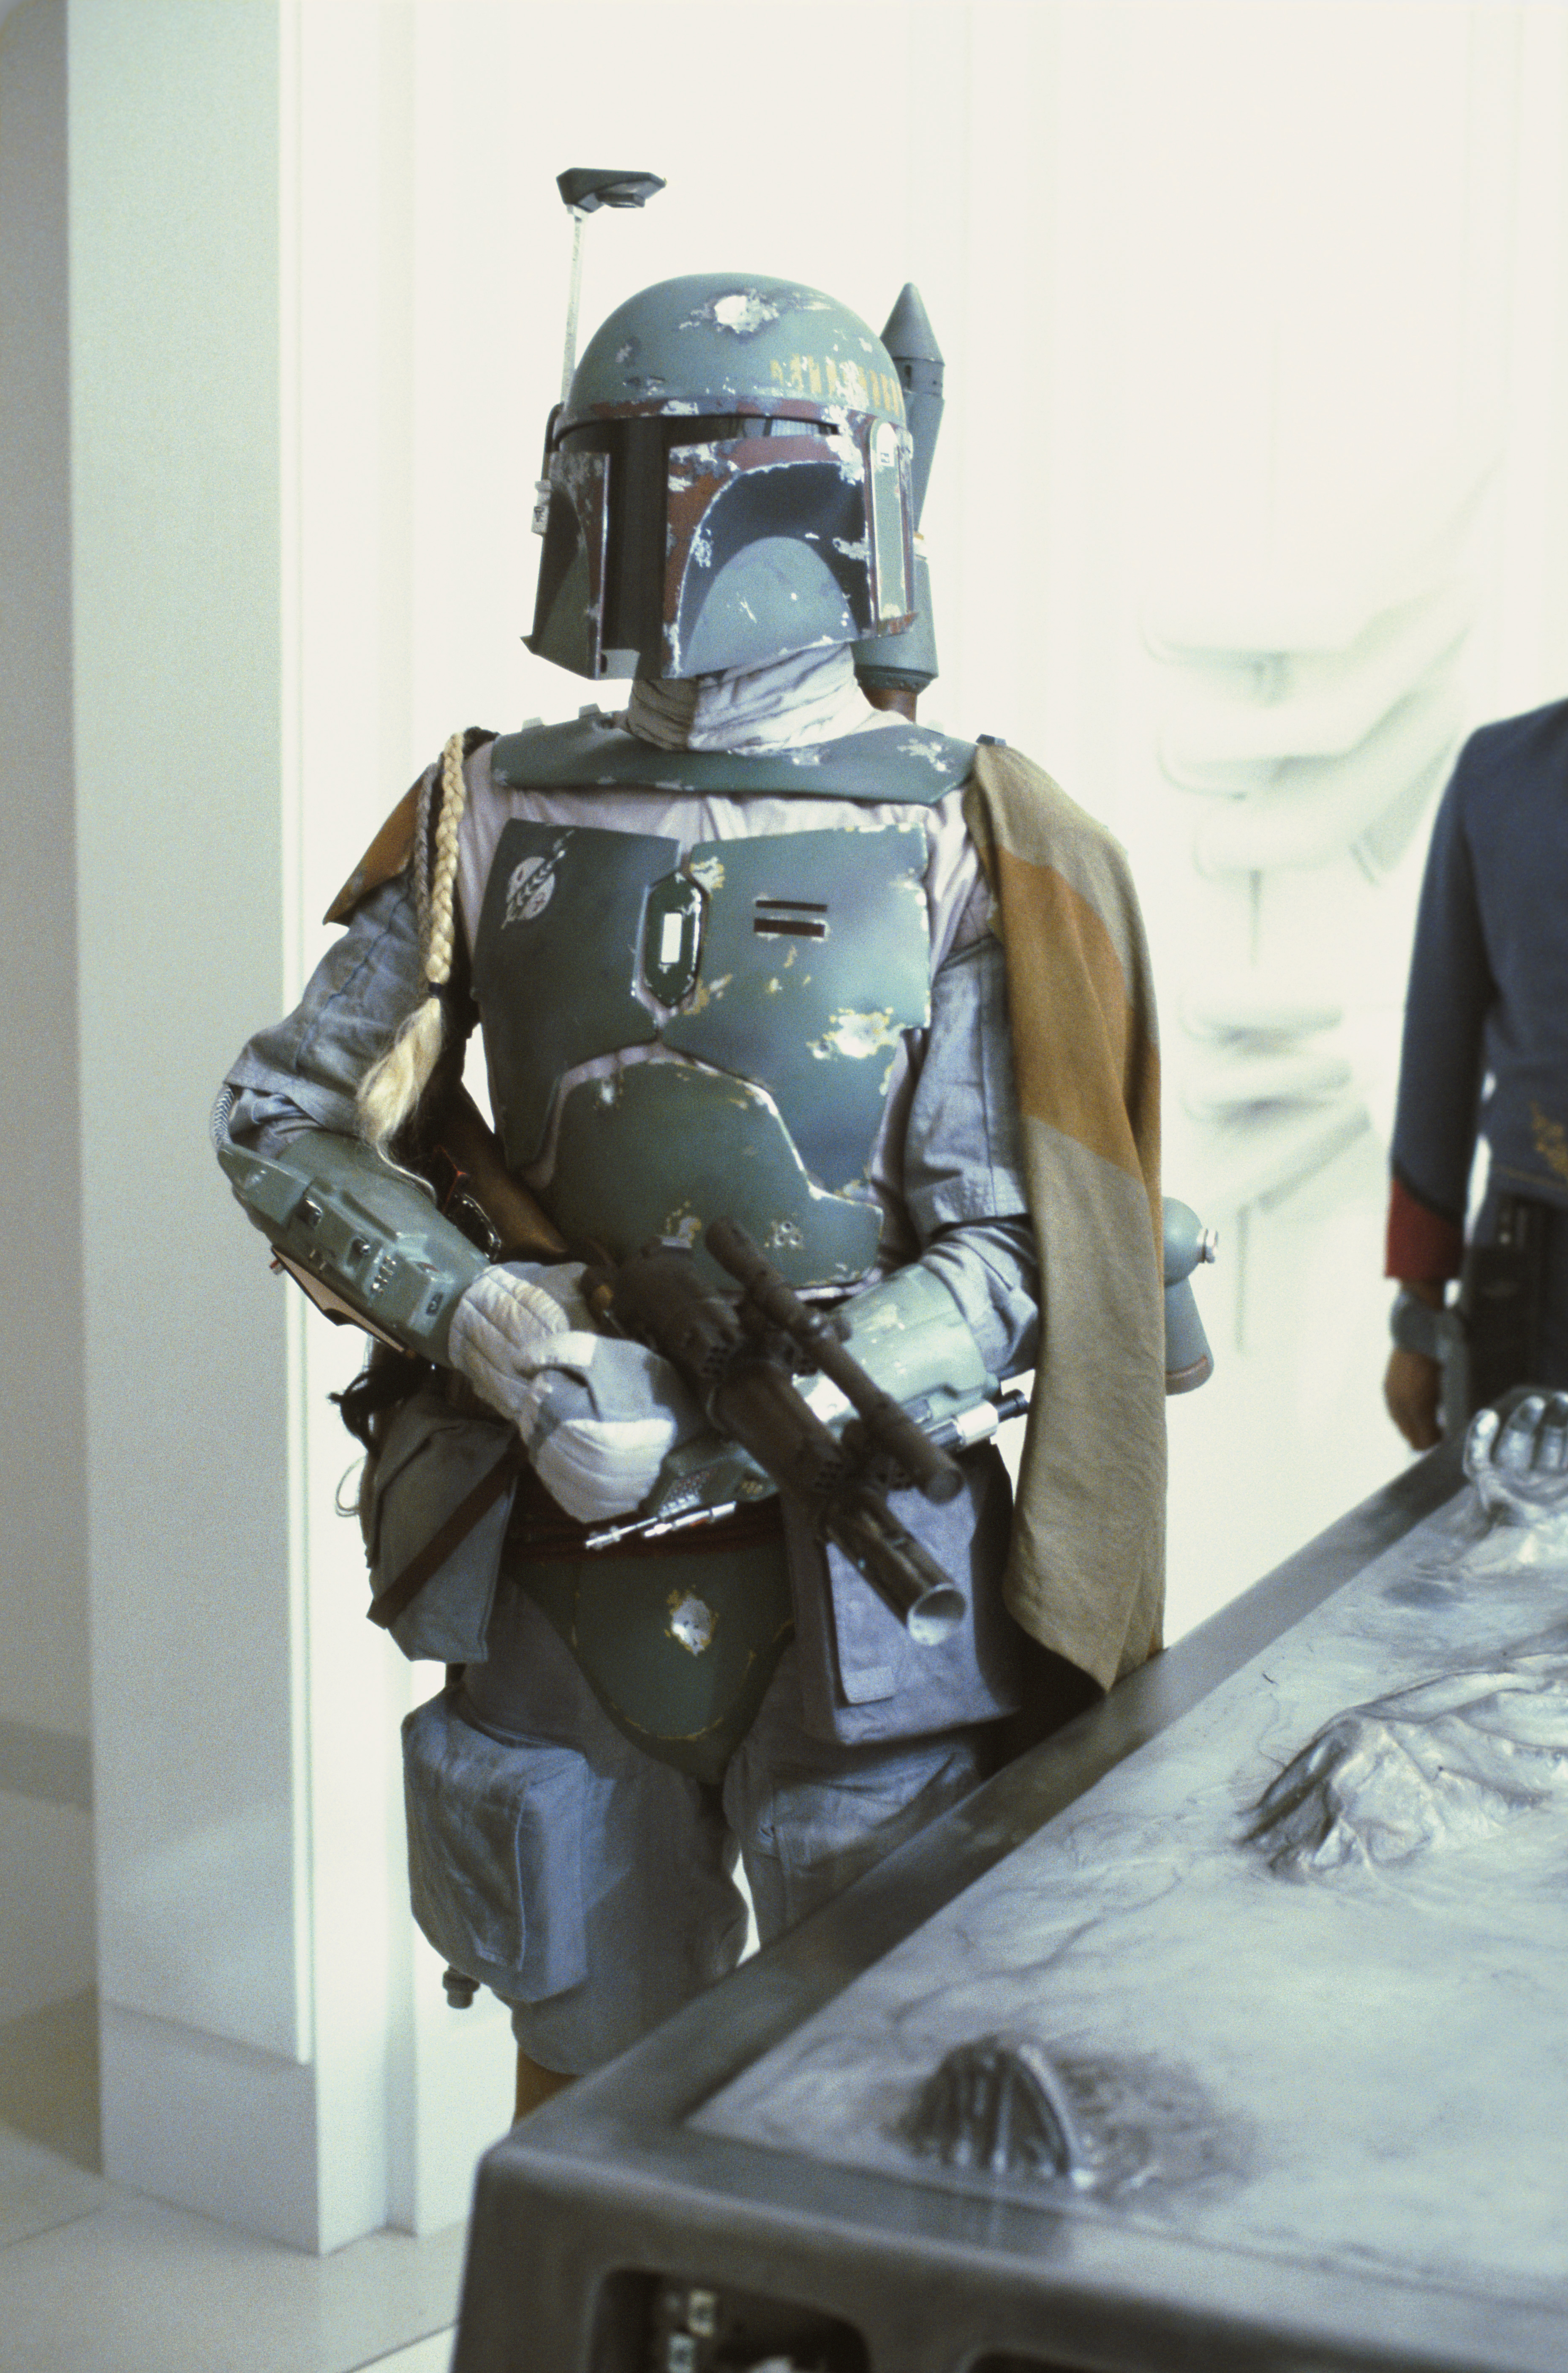 Boba-Fett-Costume-Empire-Strikes-Back-Hallway-06.jpg